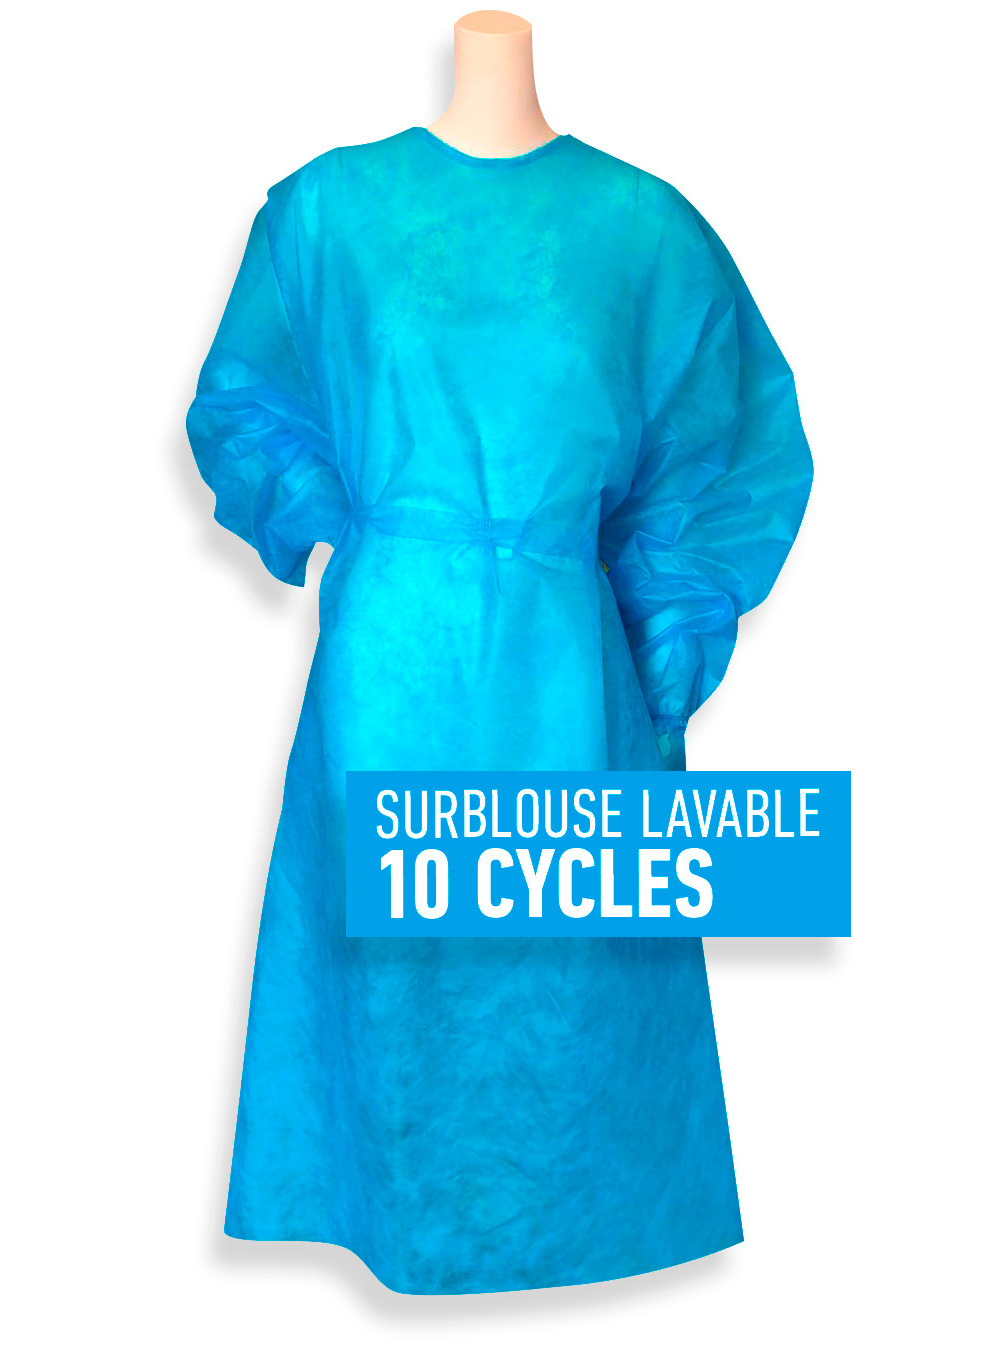 Surblouse lavable 10 cycles